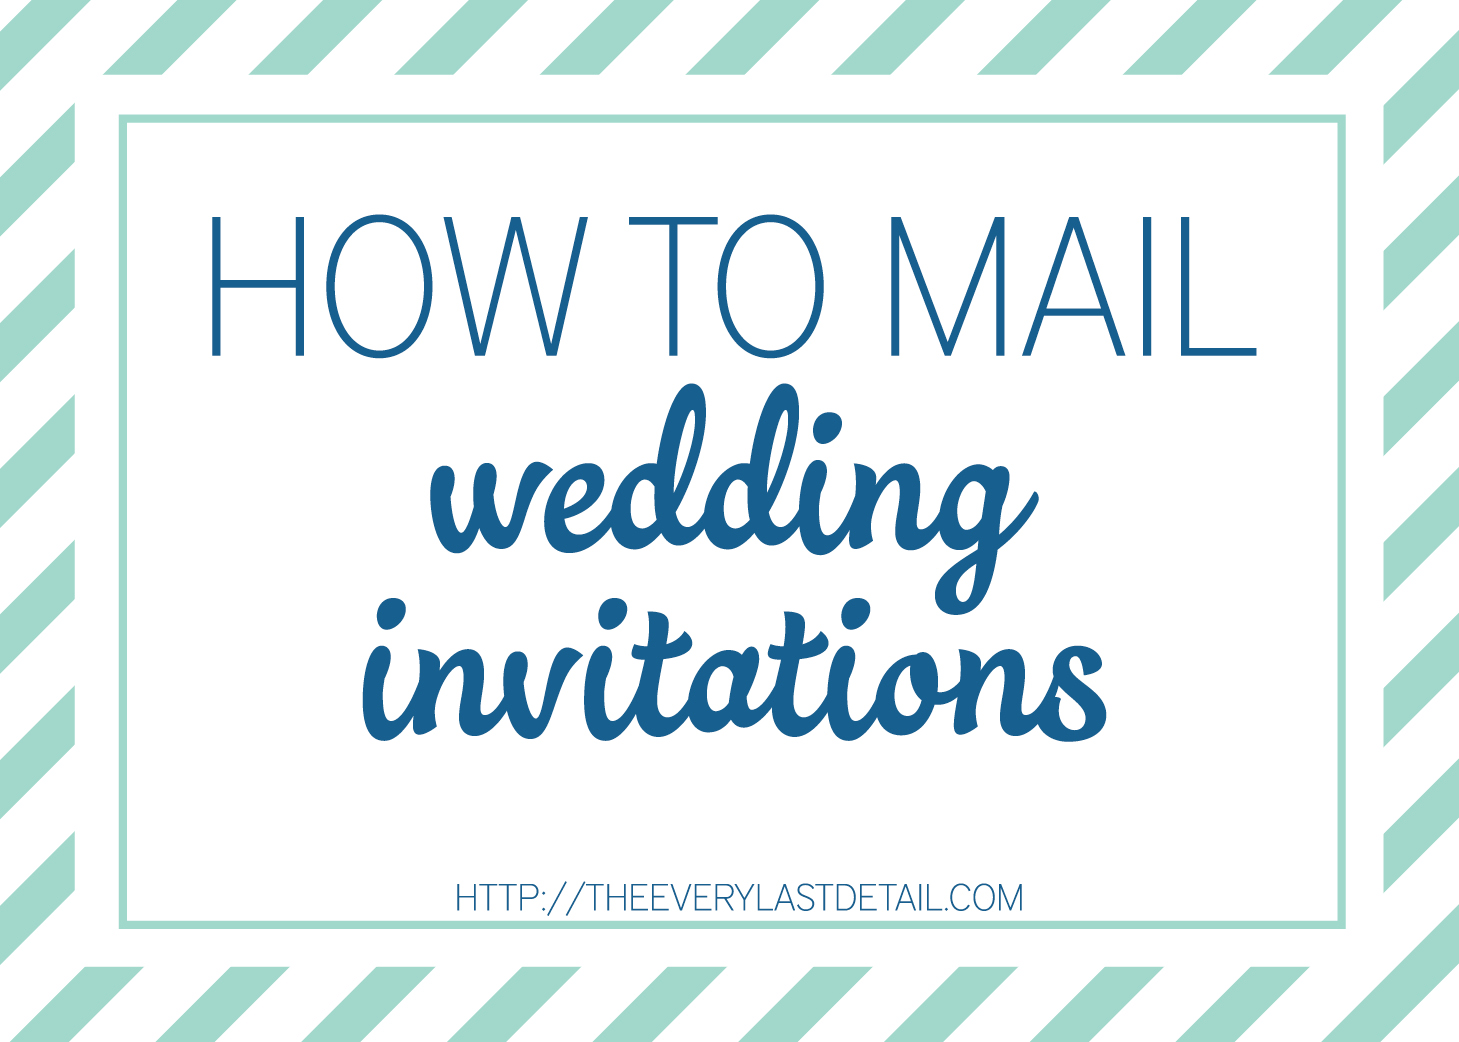 Mailing Wedding Invitations - Every Last Detail